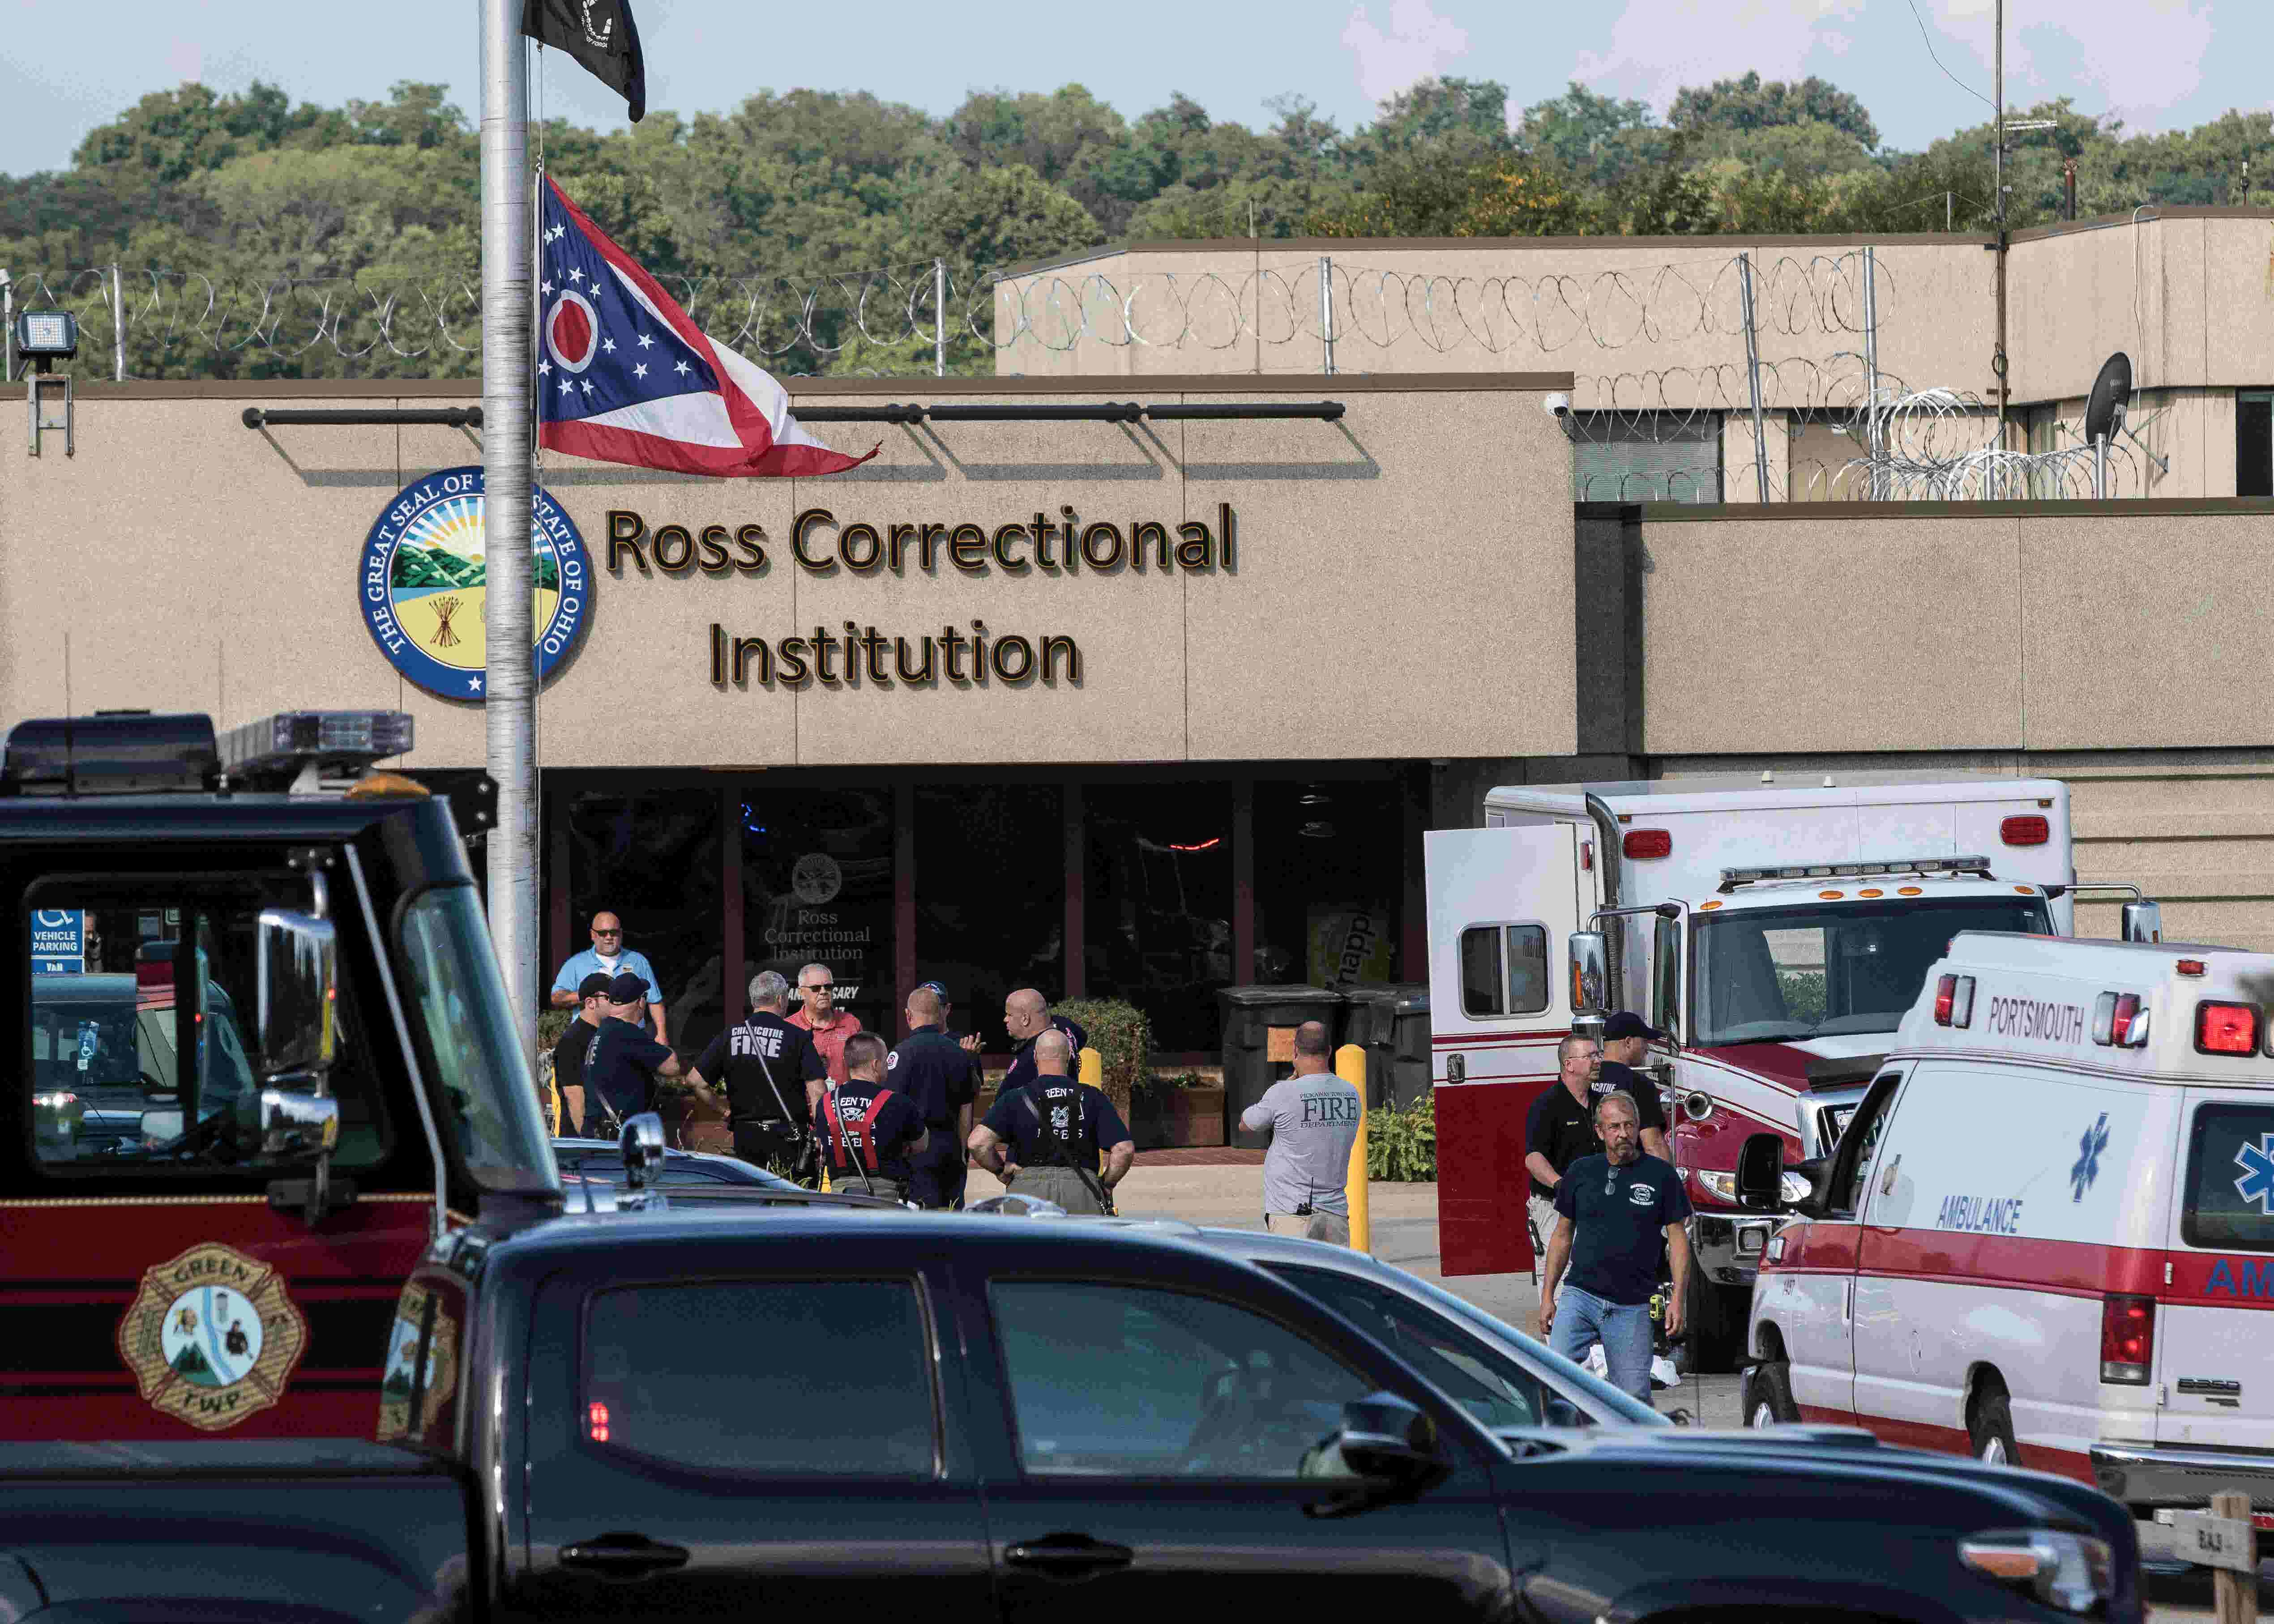 Ross Correctional Institution: Helicopter lands during overdose  investigation